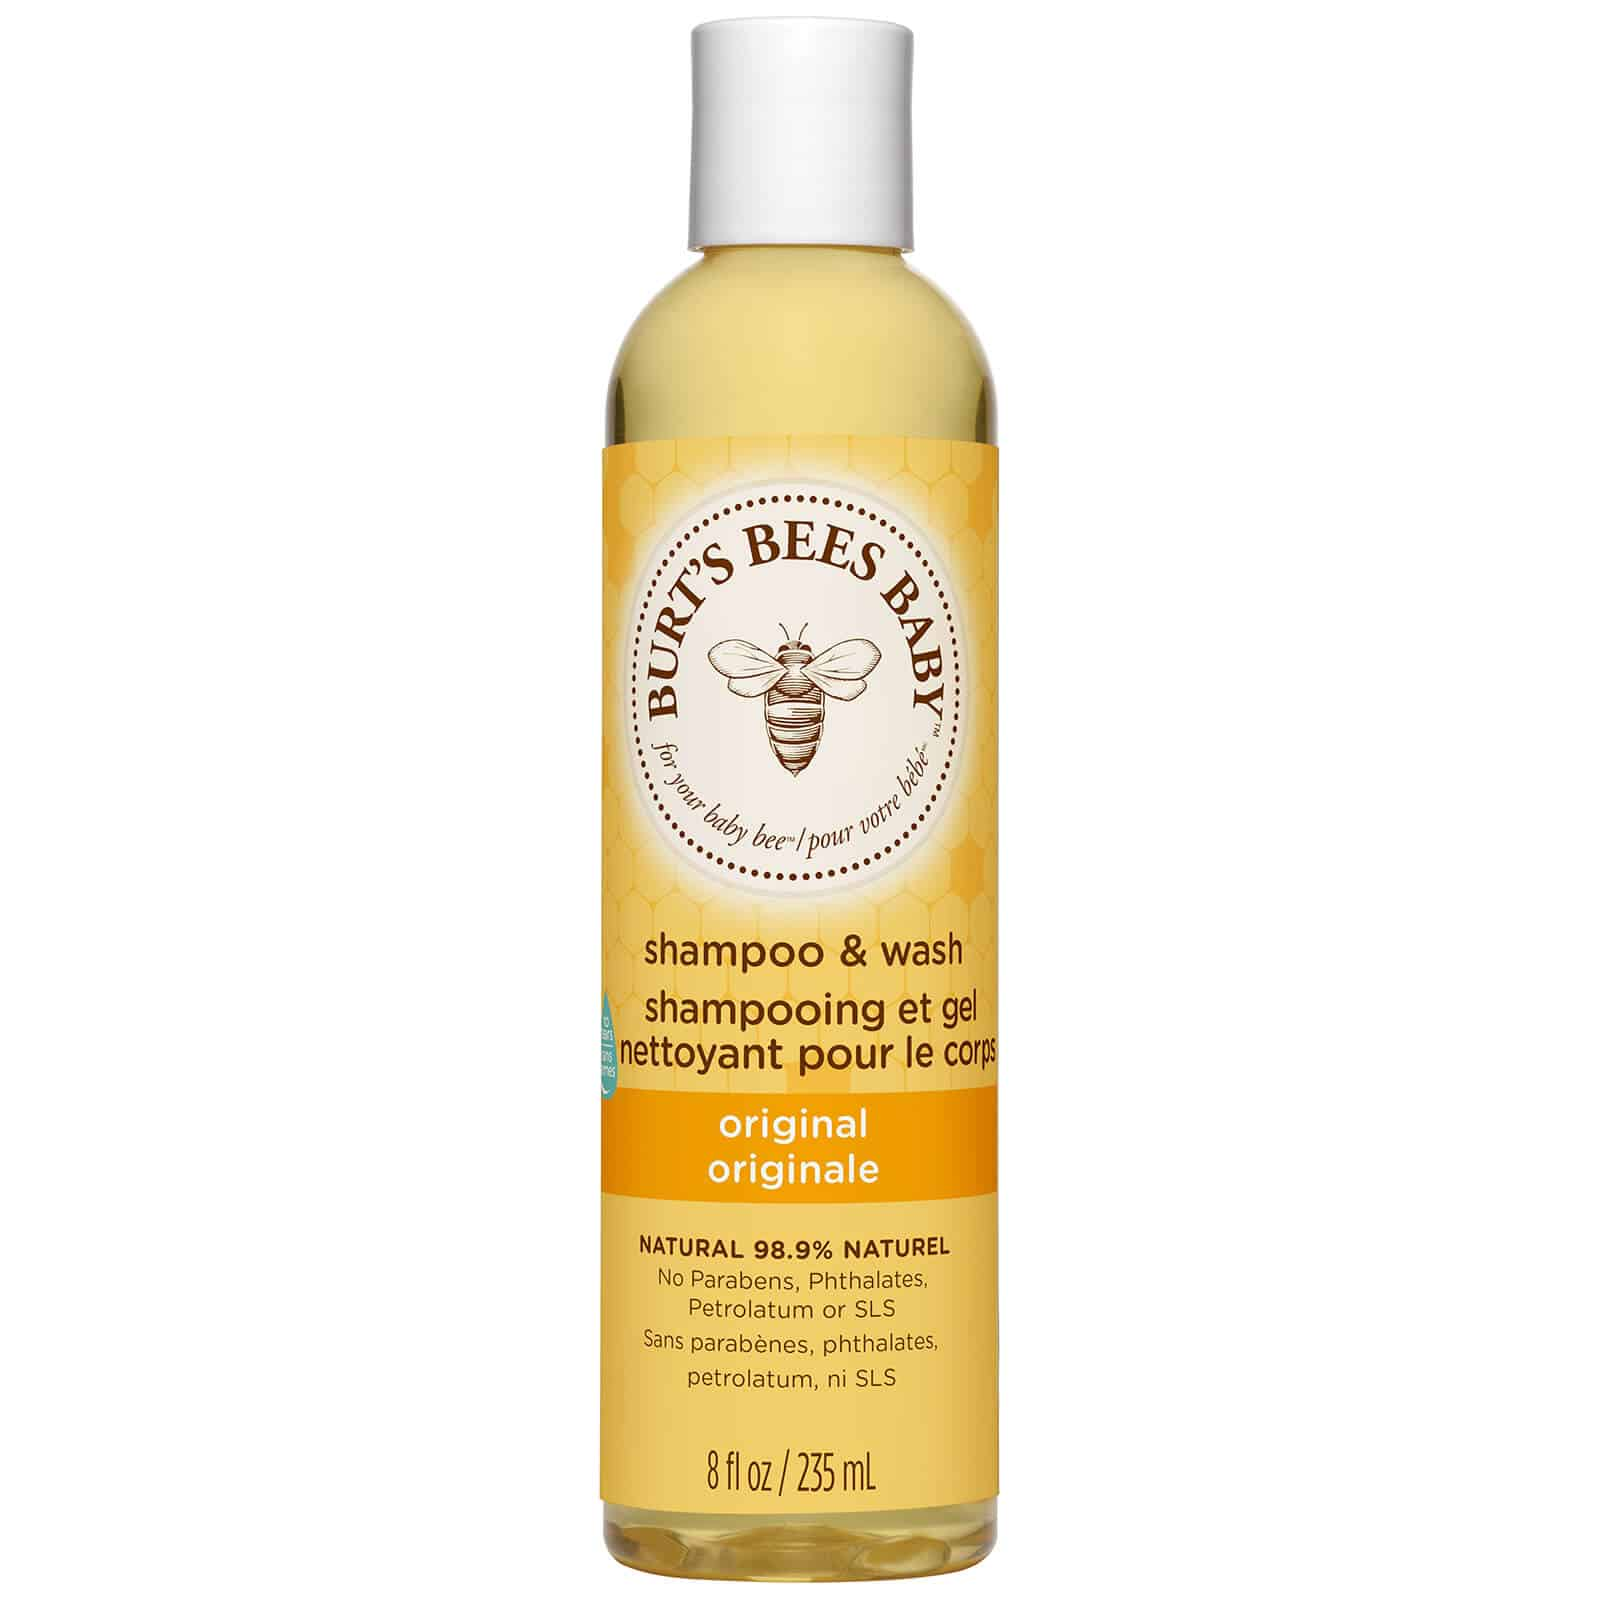 Burt's Bees Baby Organic Shampoo is best shampoo for hair growth and thickening